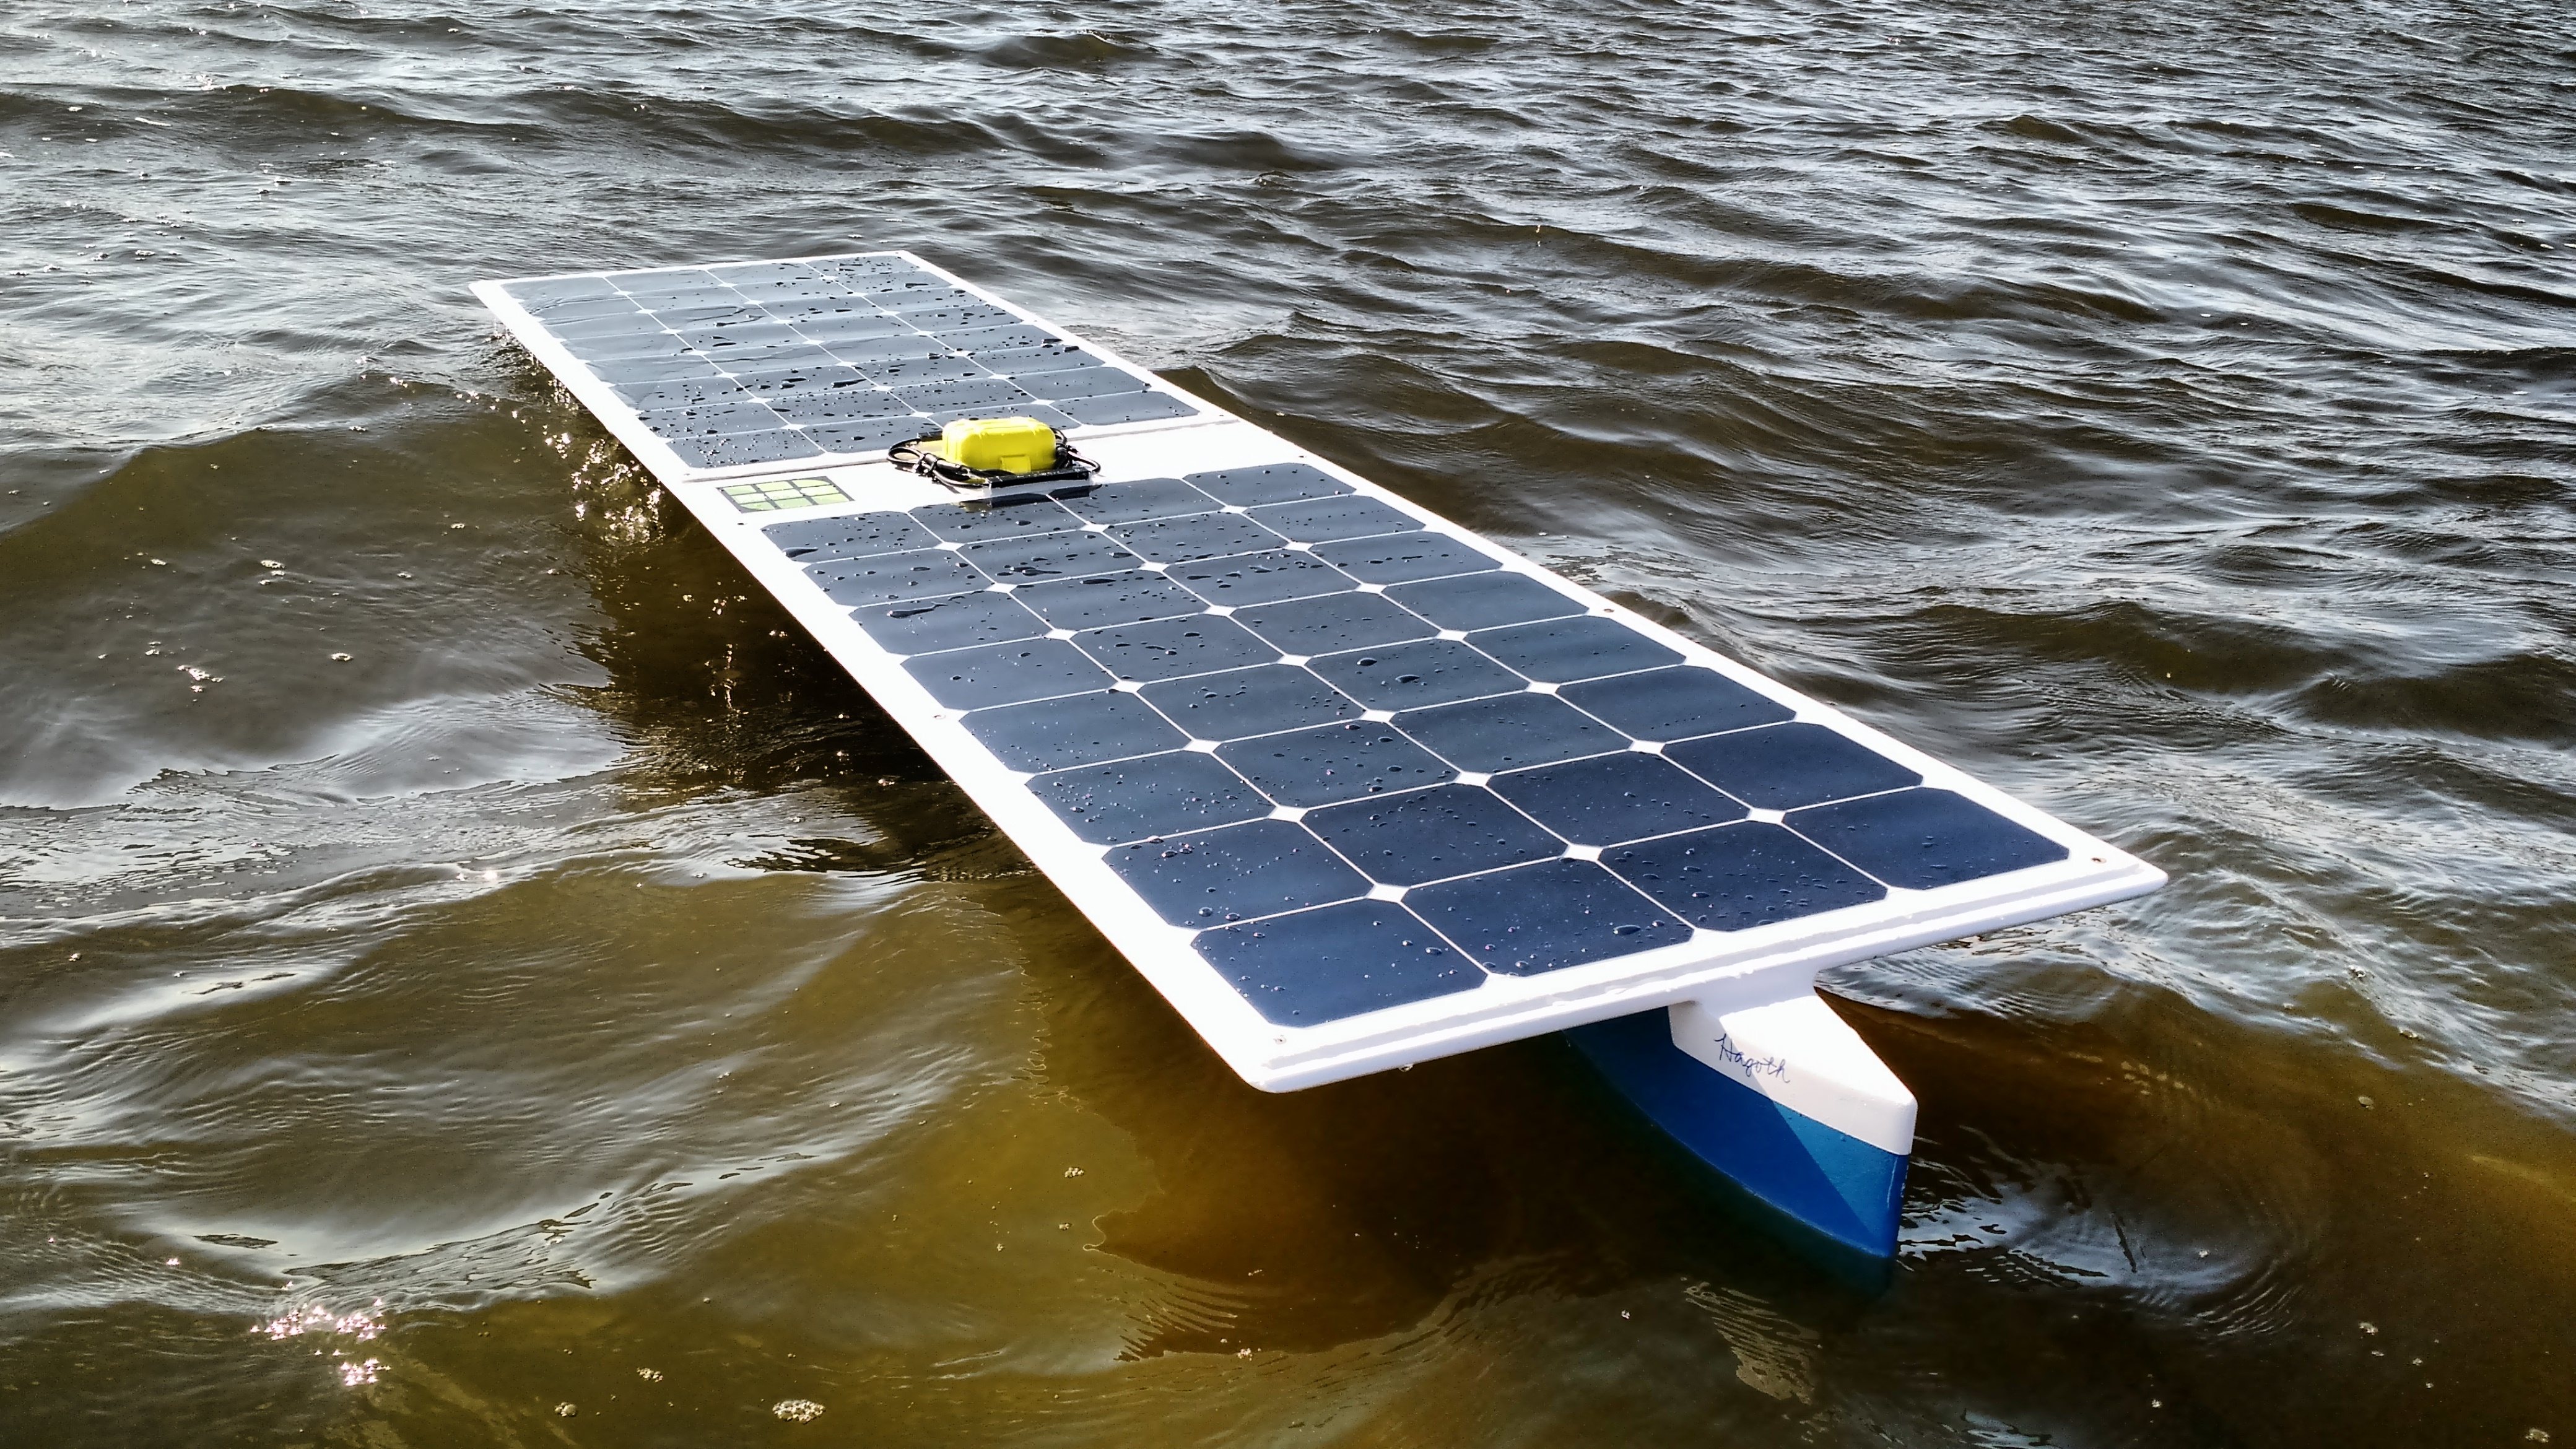 The First Unmanned Surface Vehicle Usv To Cross An Ocean